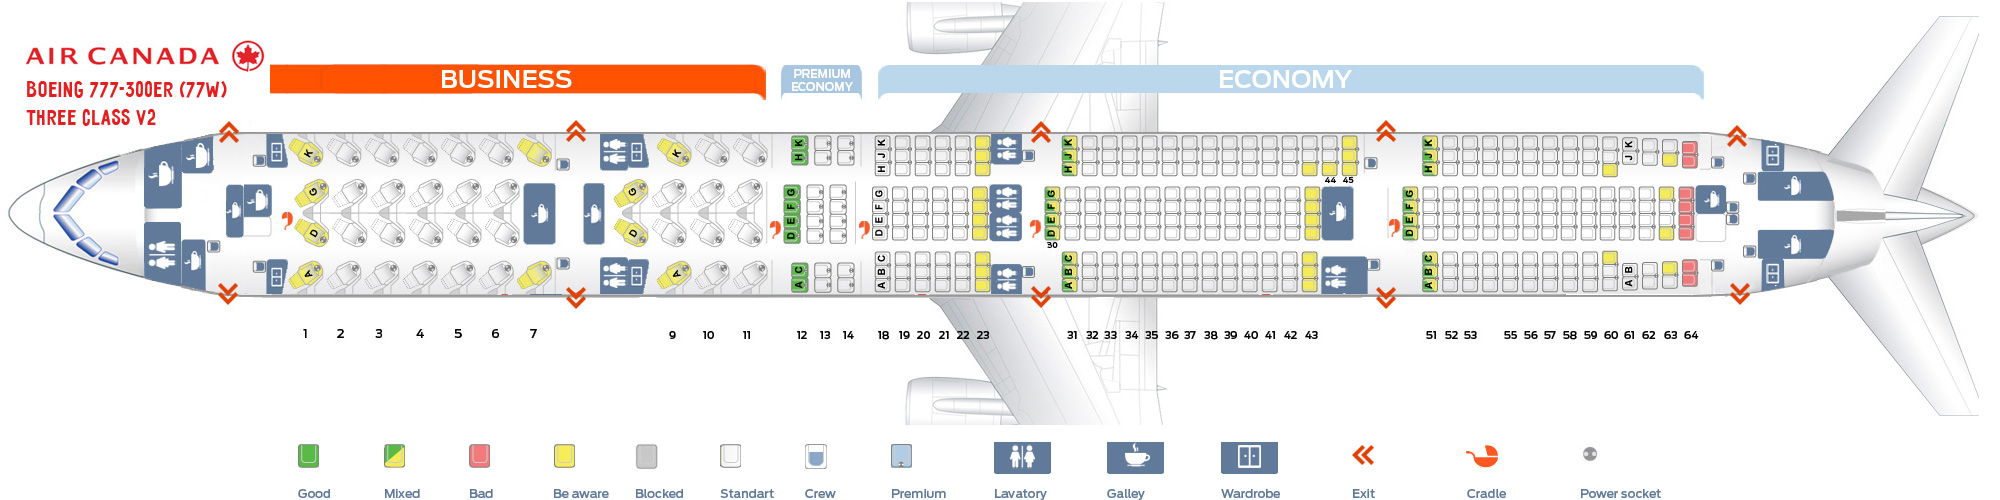 Seat map Boeing 777-300 Air Canada version 2